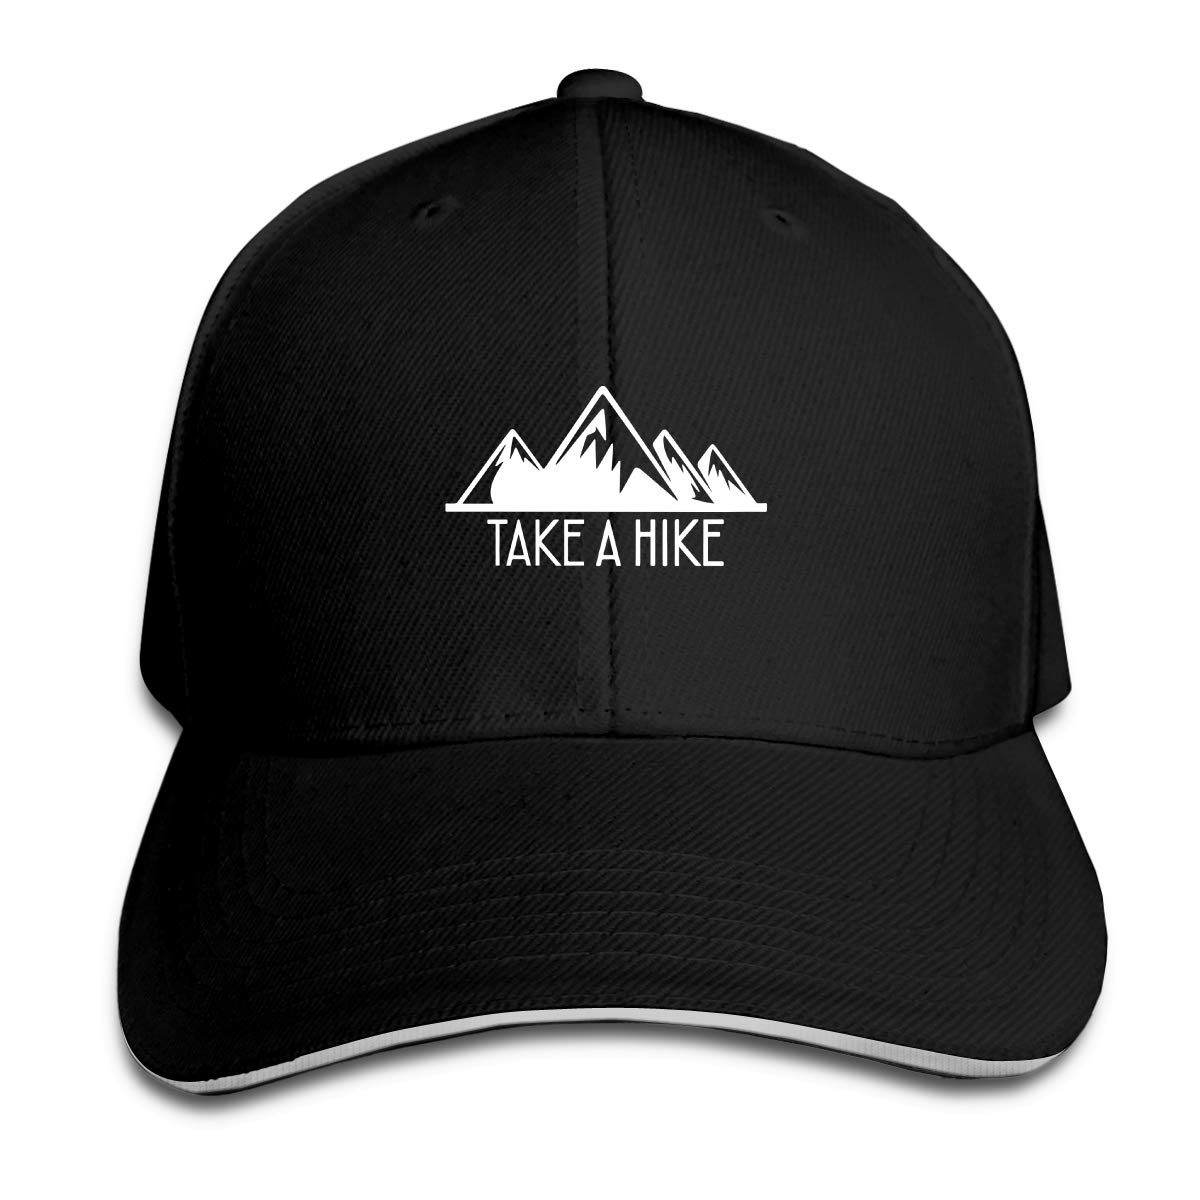 Take A Hike Mountains Logo Classic Adjustable Cotton Baseball Caps Trucker Driver Hat Outdoor Cap Black